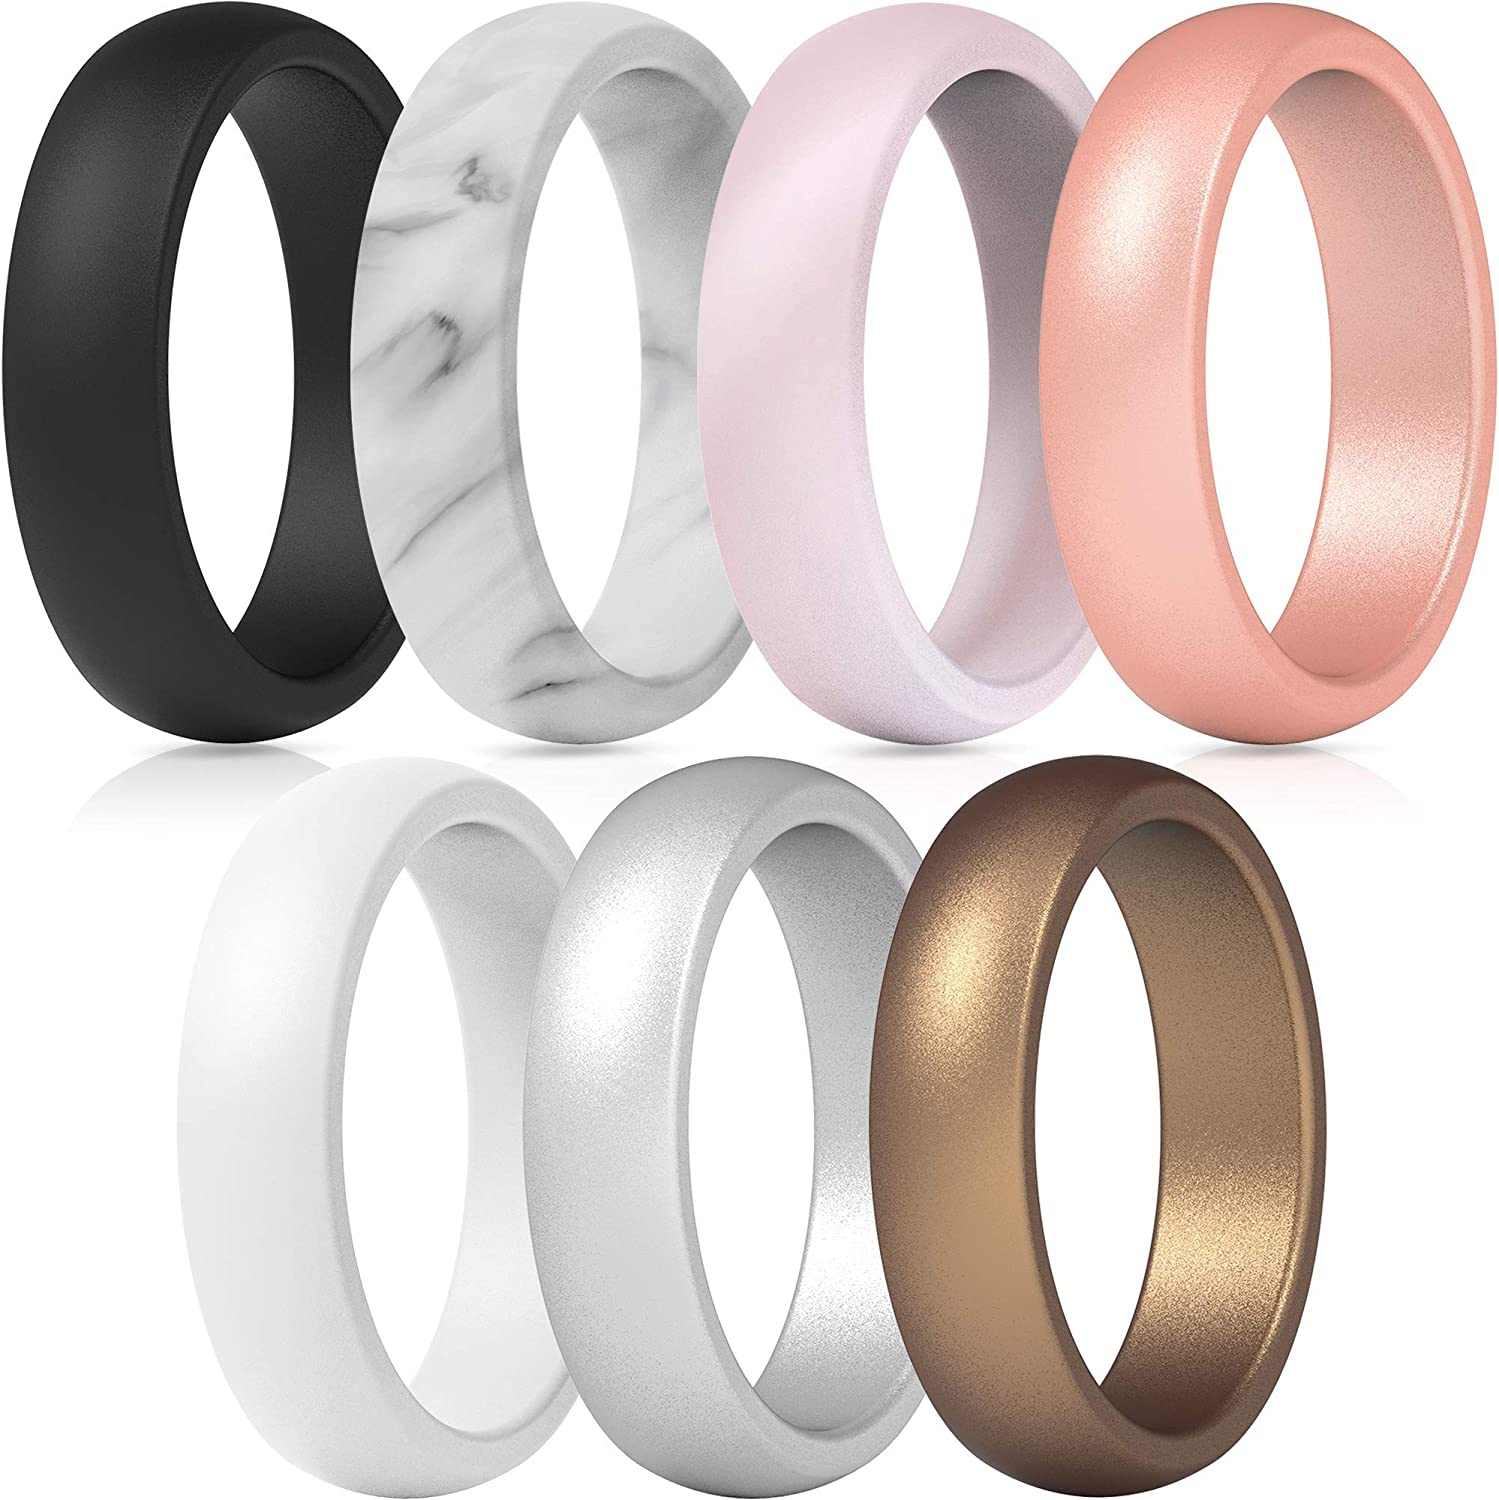 ThunderFit Silicone Wedding Band Review